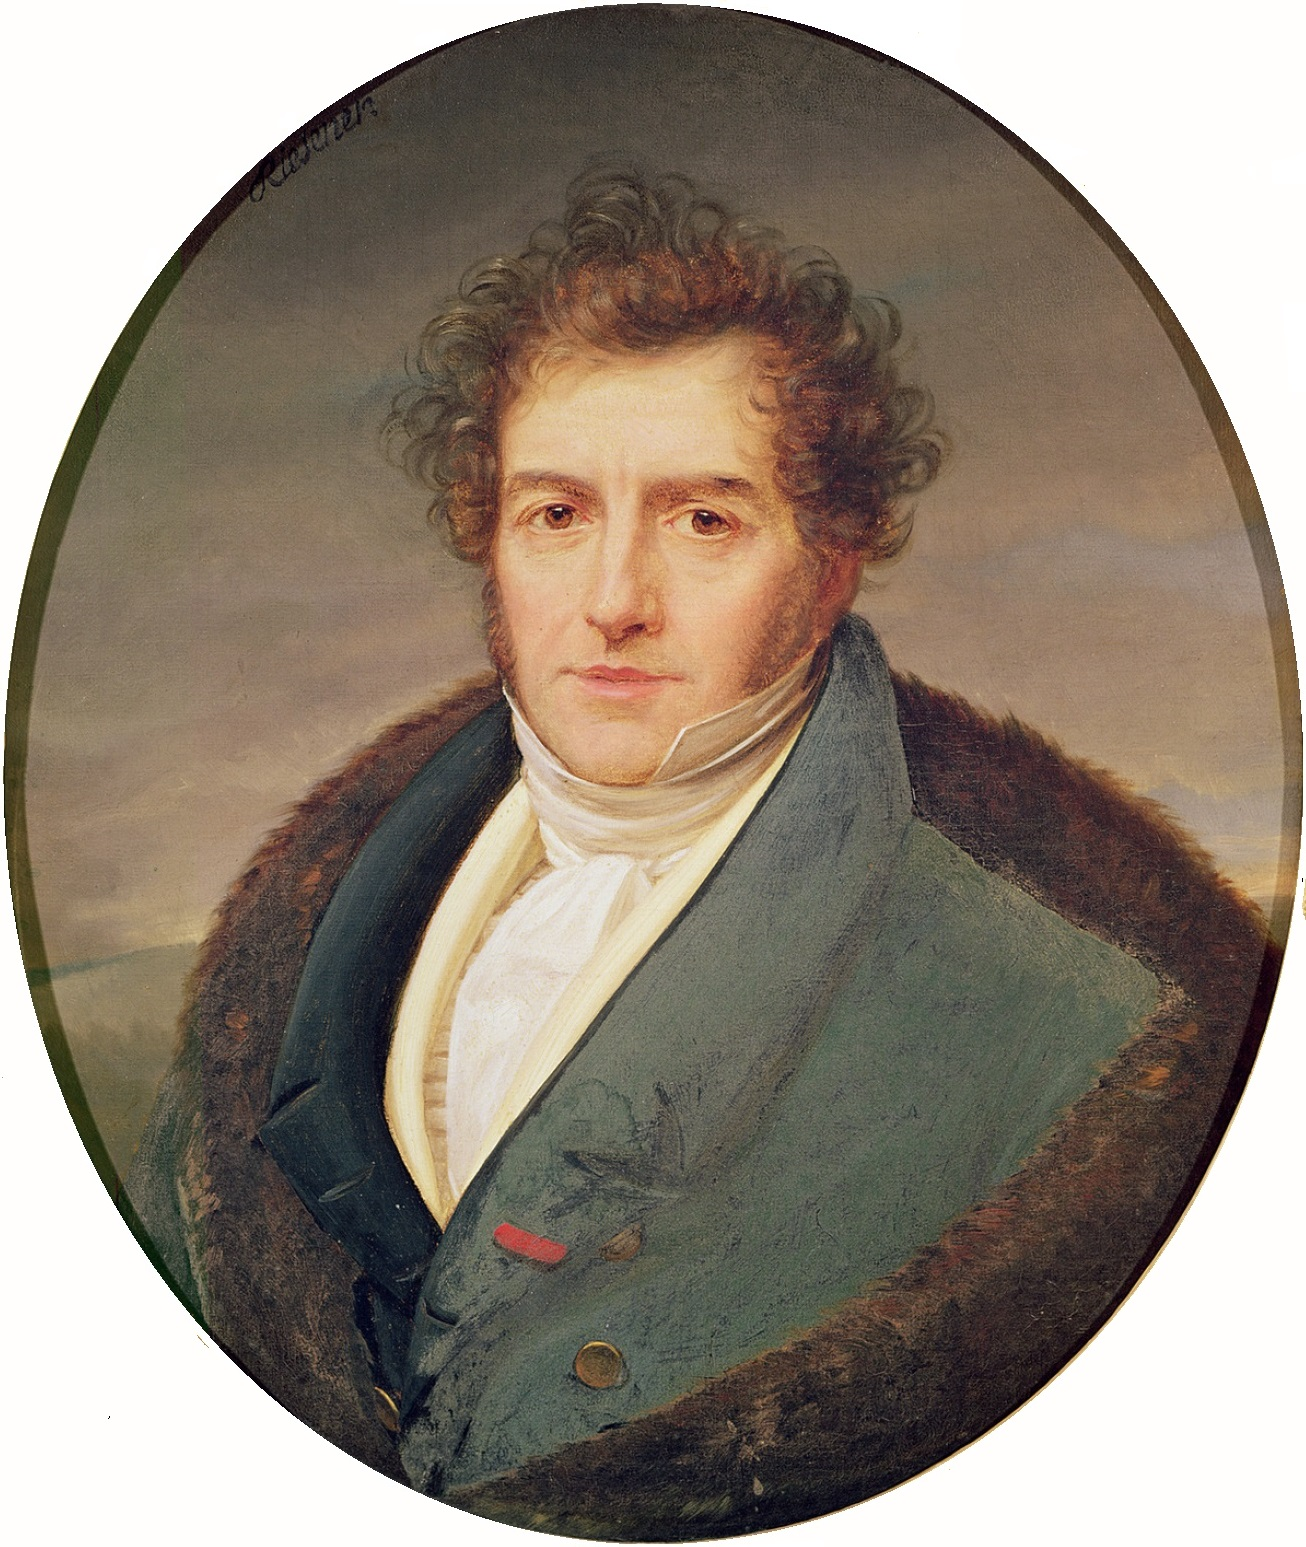 https://upload.wikimedia.org/wikipedia/commons/6/64/L%C3%A9on_Riesener_-_Portrait_de_Fran%C3%A7ois-Adrien_Boieldieu.jpg